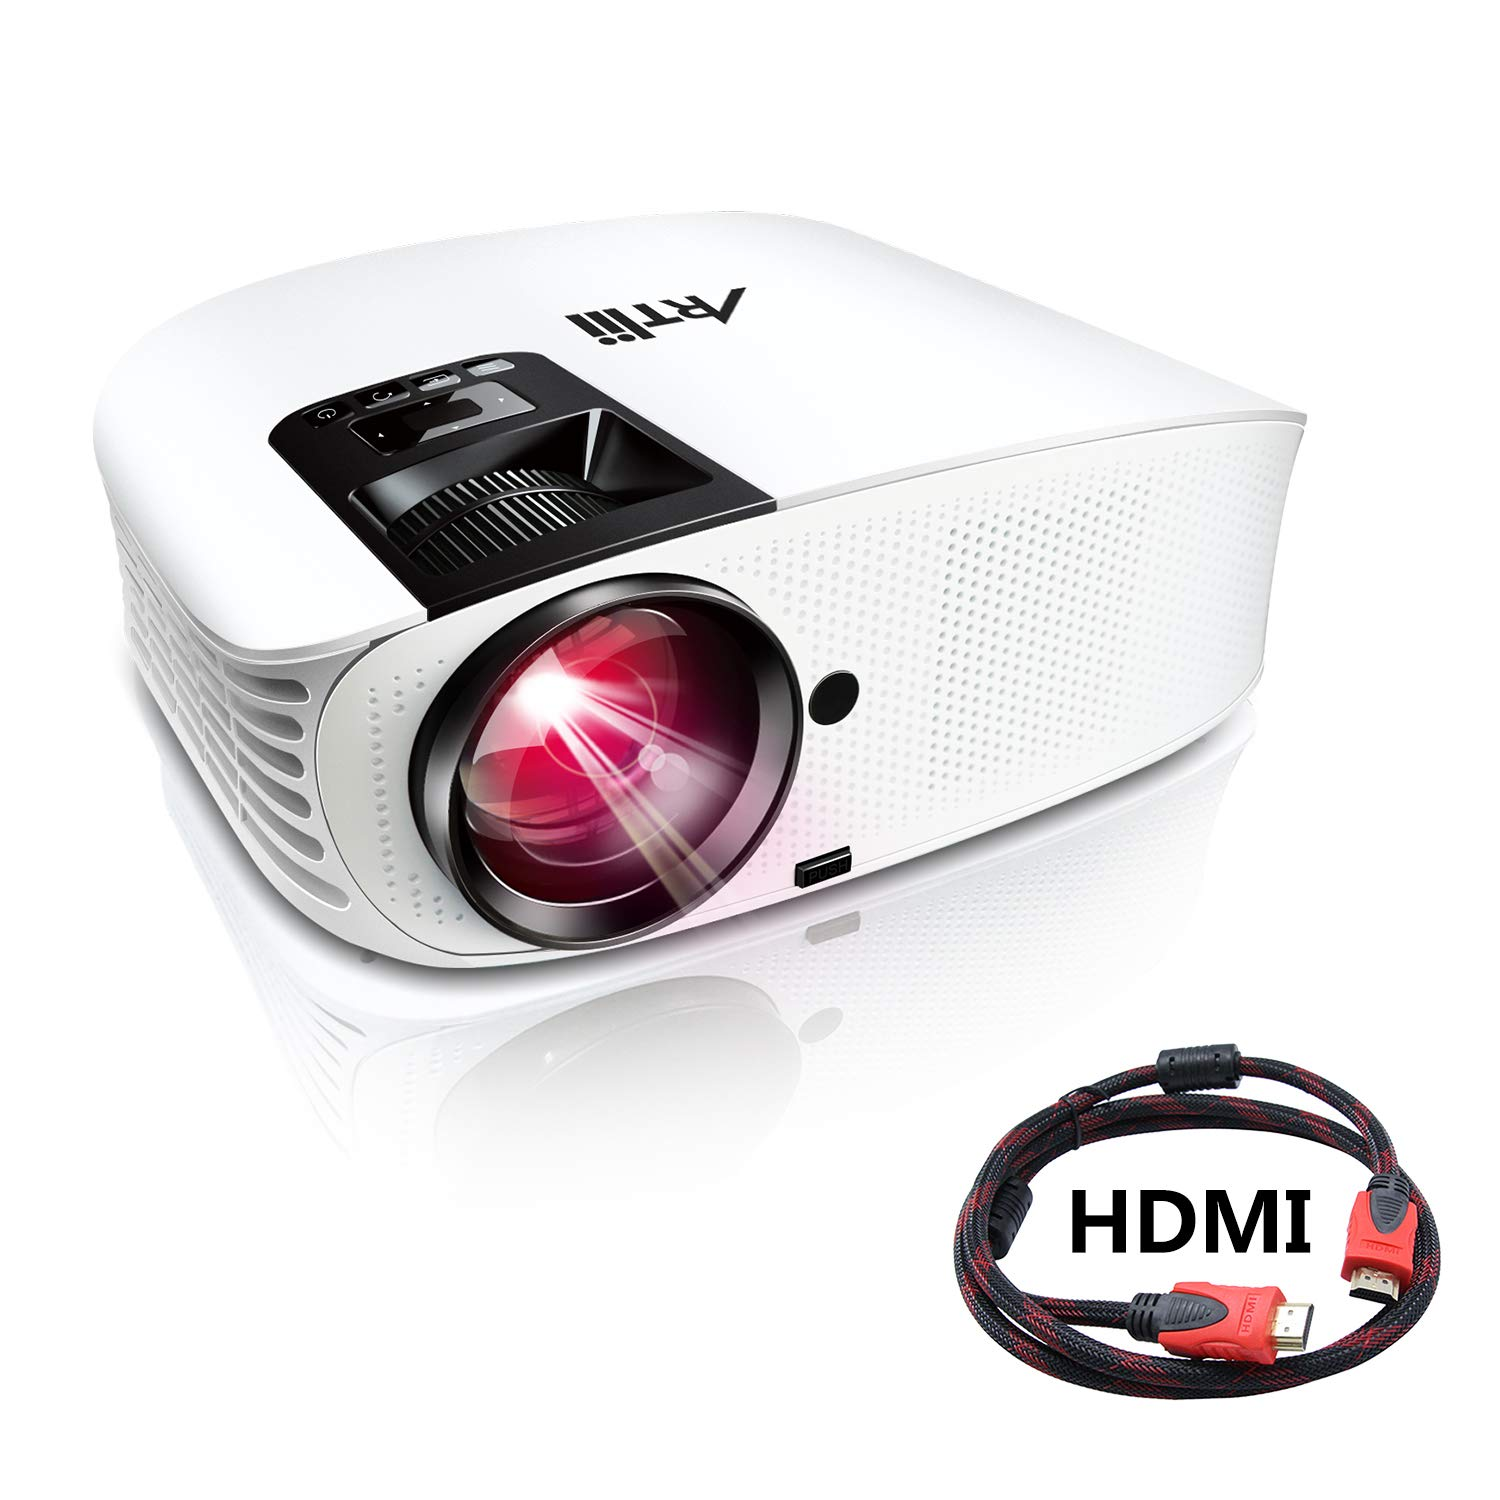 Artlii Proyector HD, Home Cinema Proyectores LED 3500 Lúmenes, Soporte 1080p Full HD,